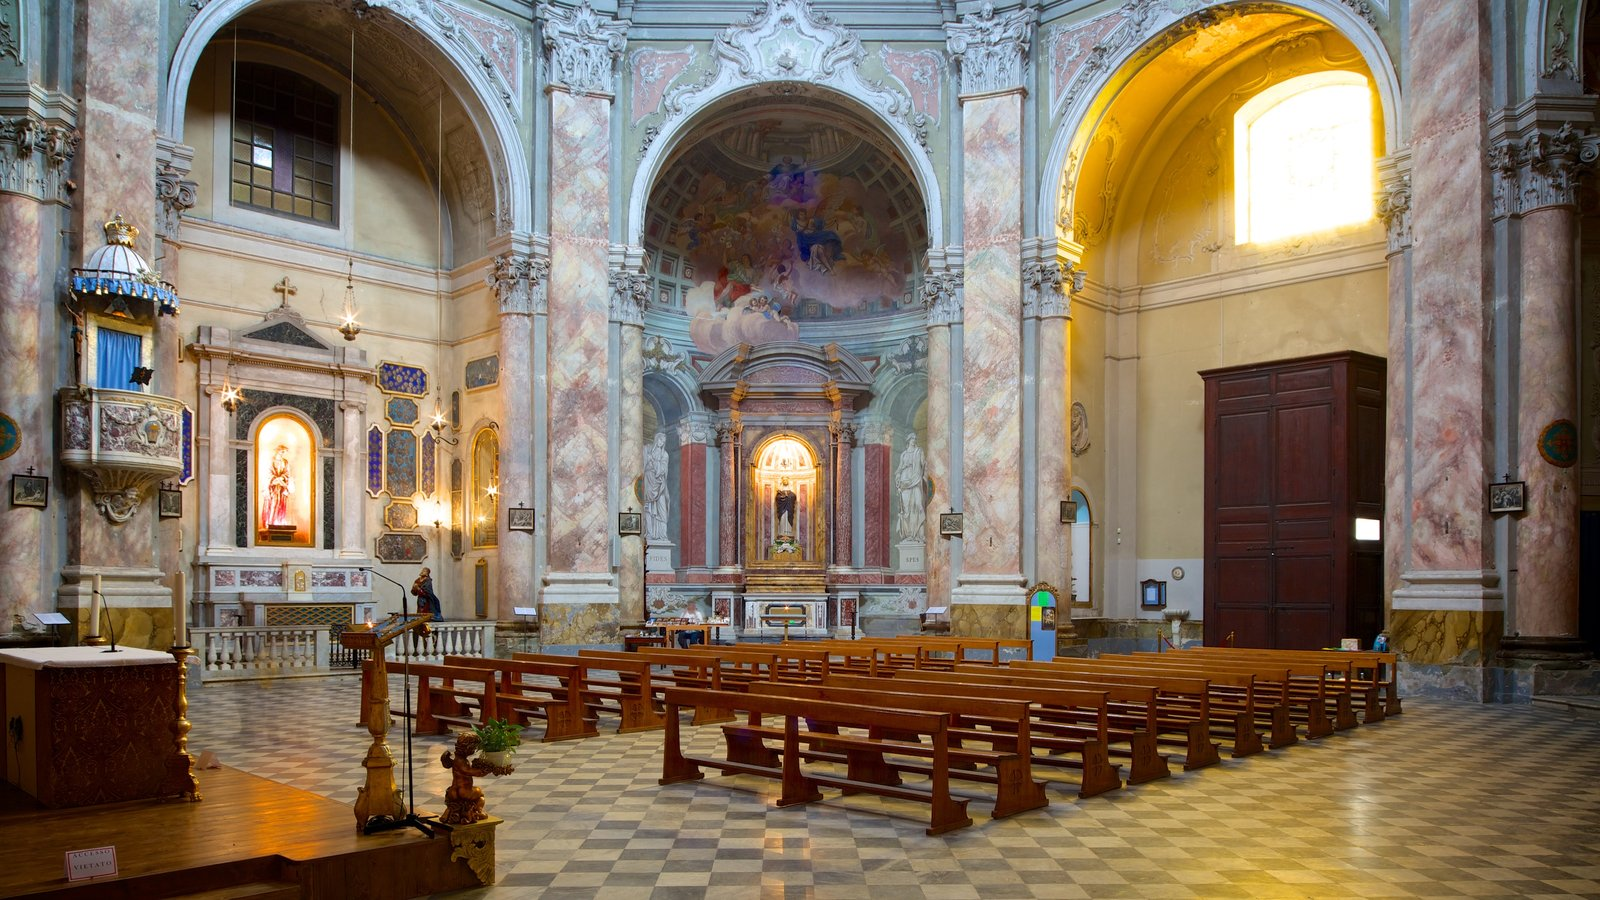 Chiesa di Santa Caterina featuring a church or cathedral, heritage elements and interior views